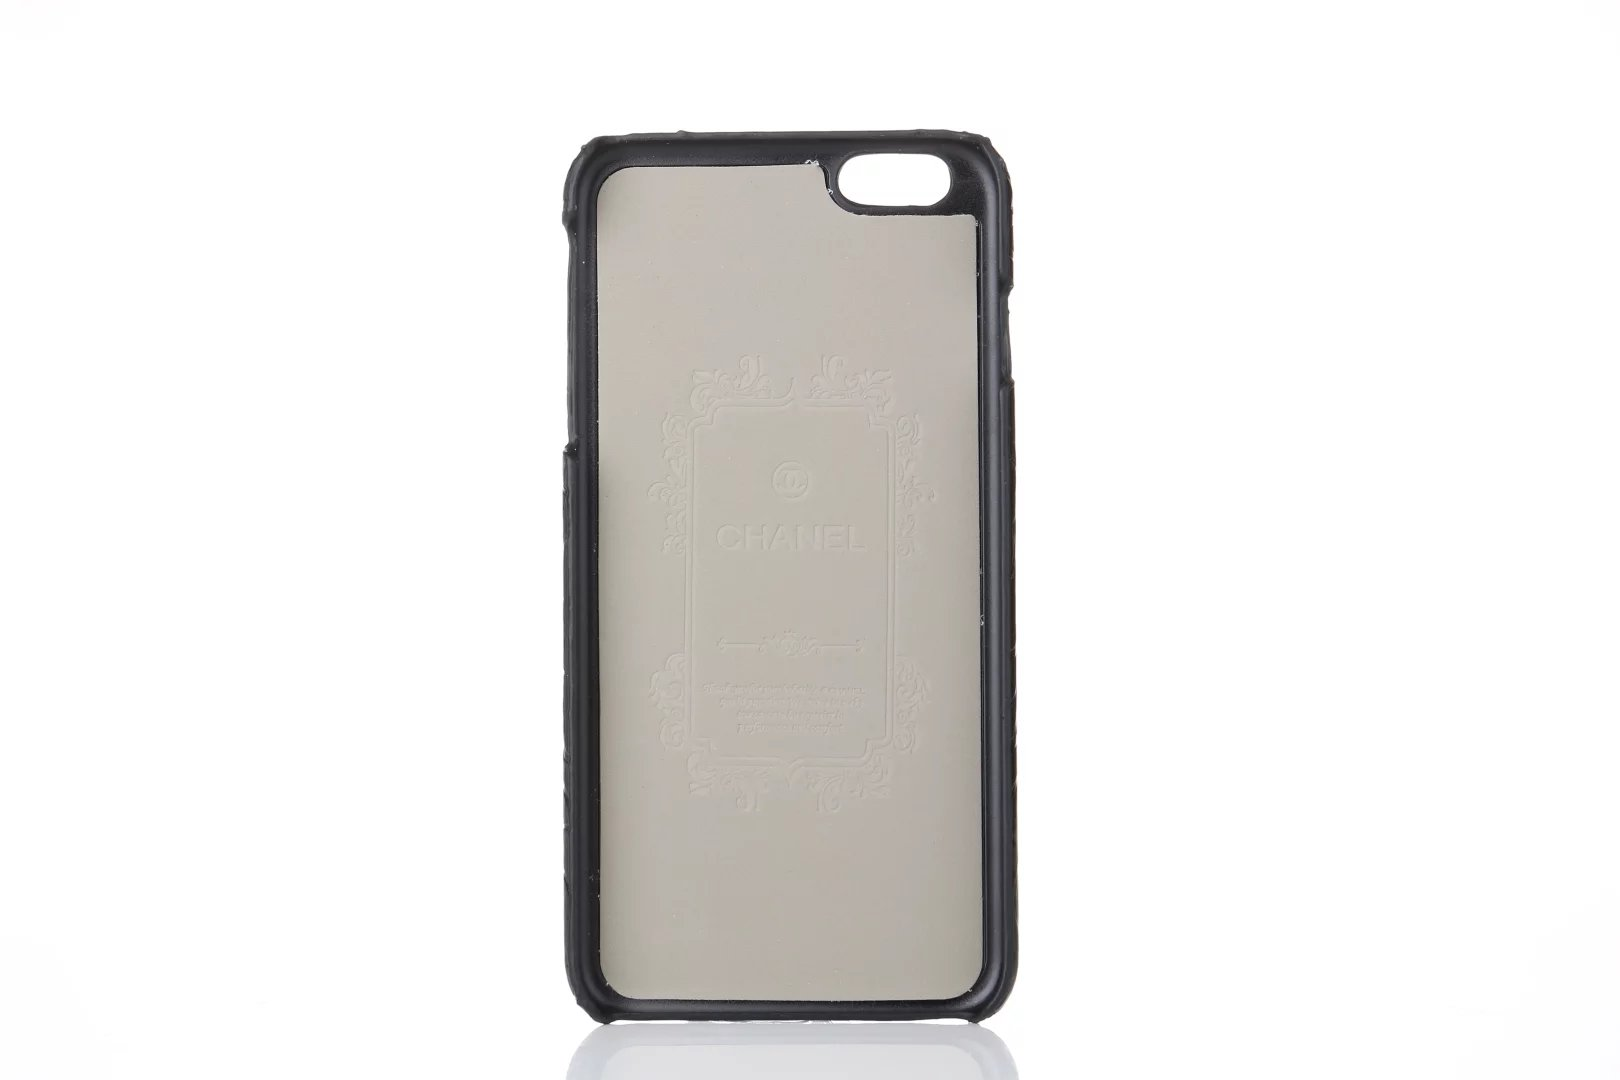 iphone 6 Plus protective covers iphone 6 Plus protective case fashion iphone6 plus case iphone 6 battery mah best iphone 6 s cases best phone cases iphone 6 case i phone 6 where can i get iphone cases cell phone covers online